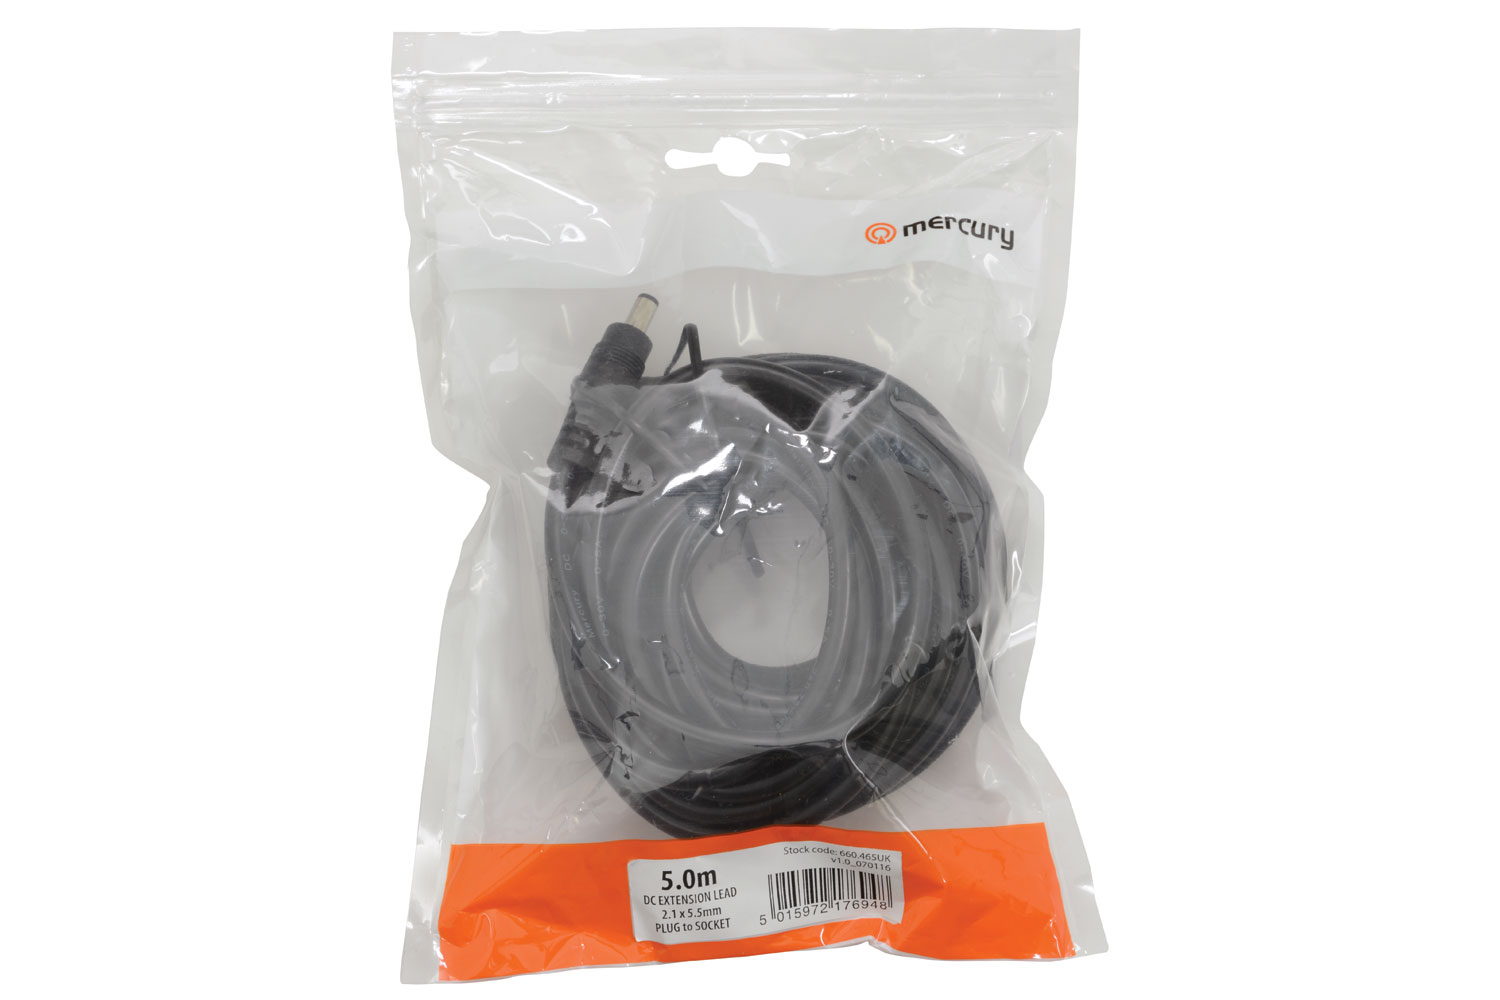 Mercury DC Extension Socket Cable - 5 Metre